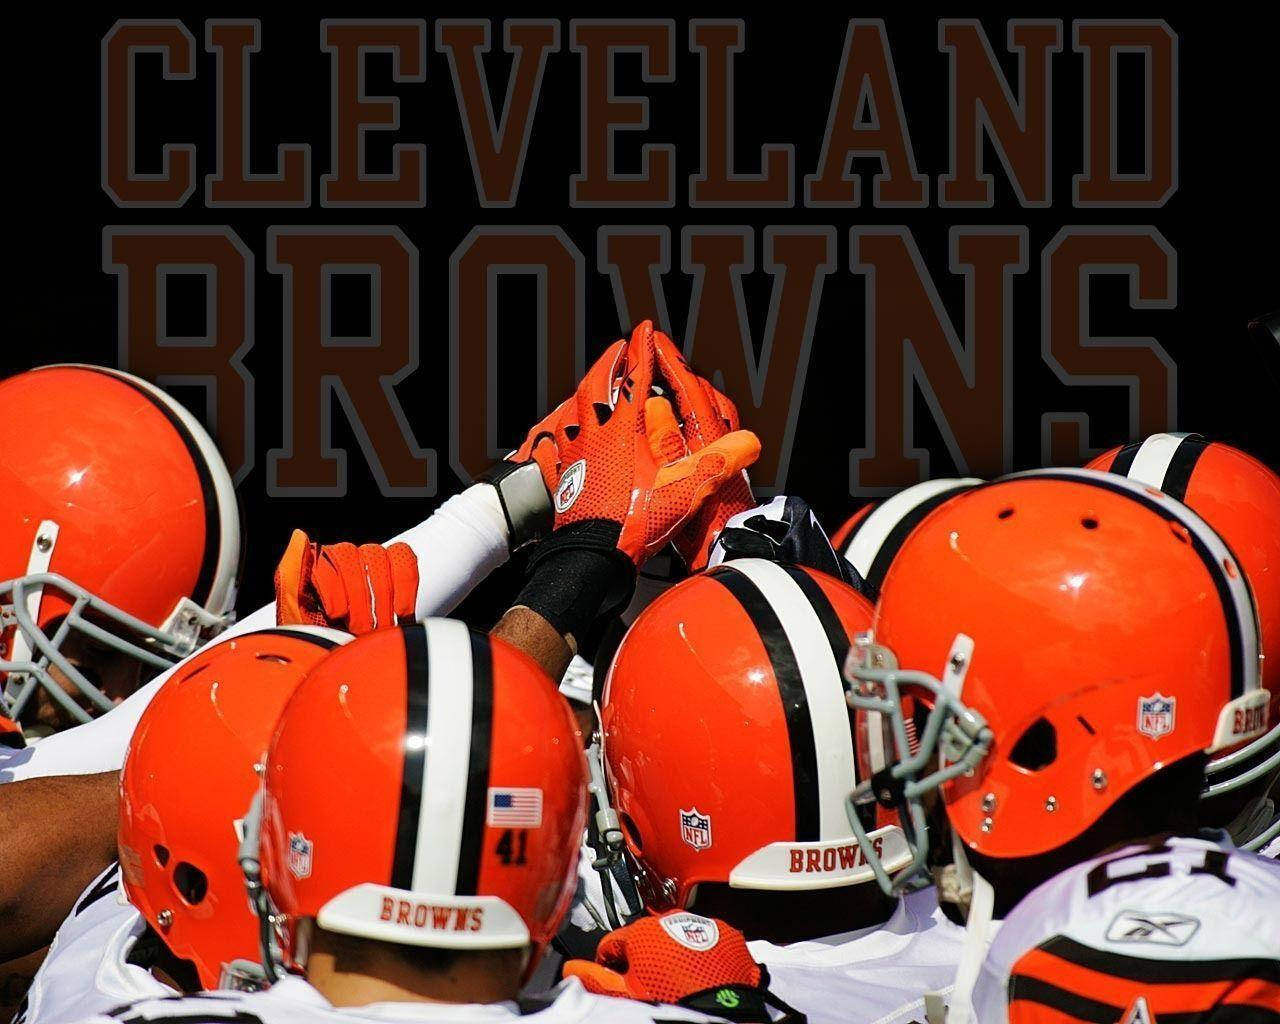 Wallpaper Blink - Cleveland Browns Wallpaper HD 25 - 1280 X 1024 for ...